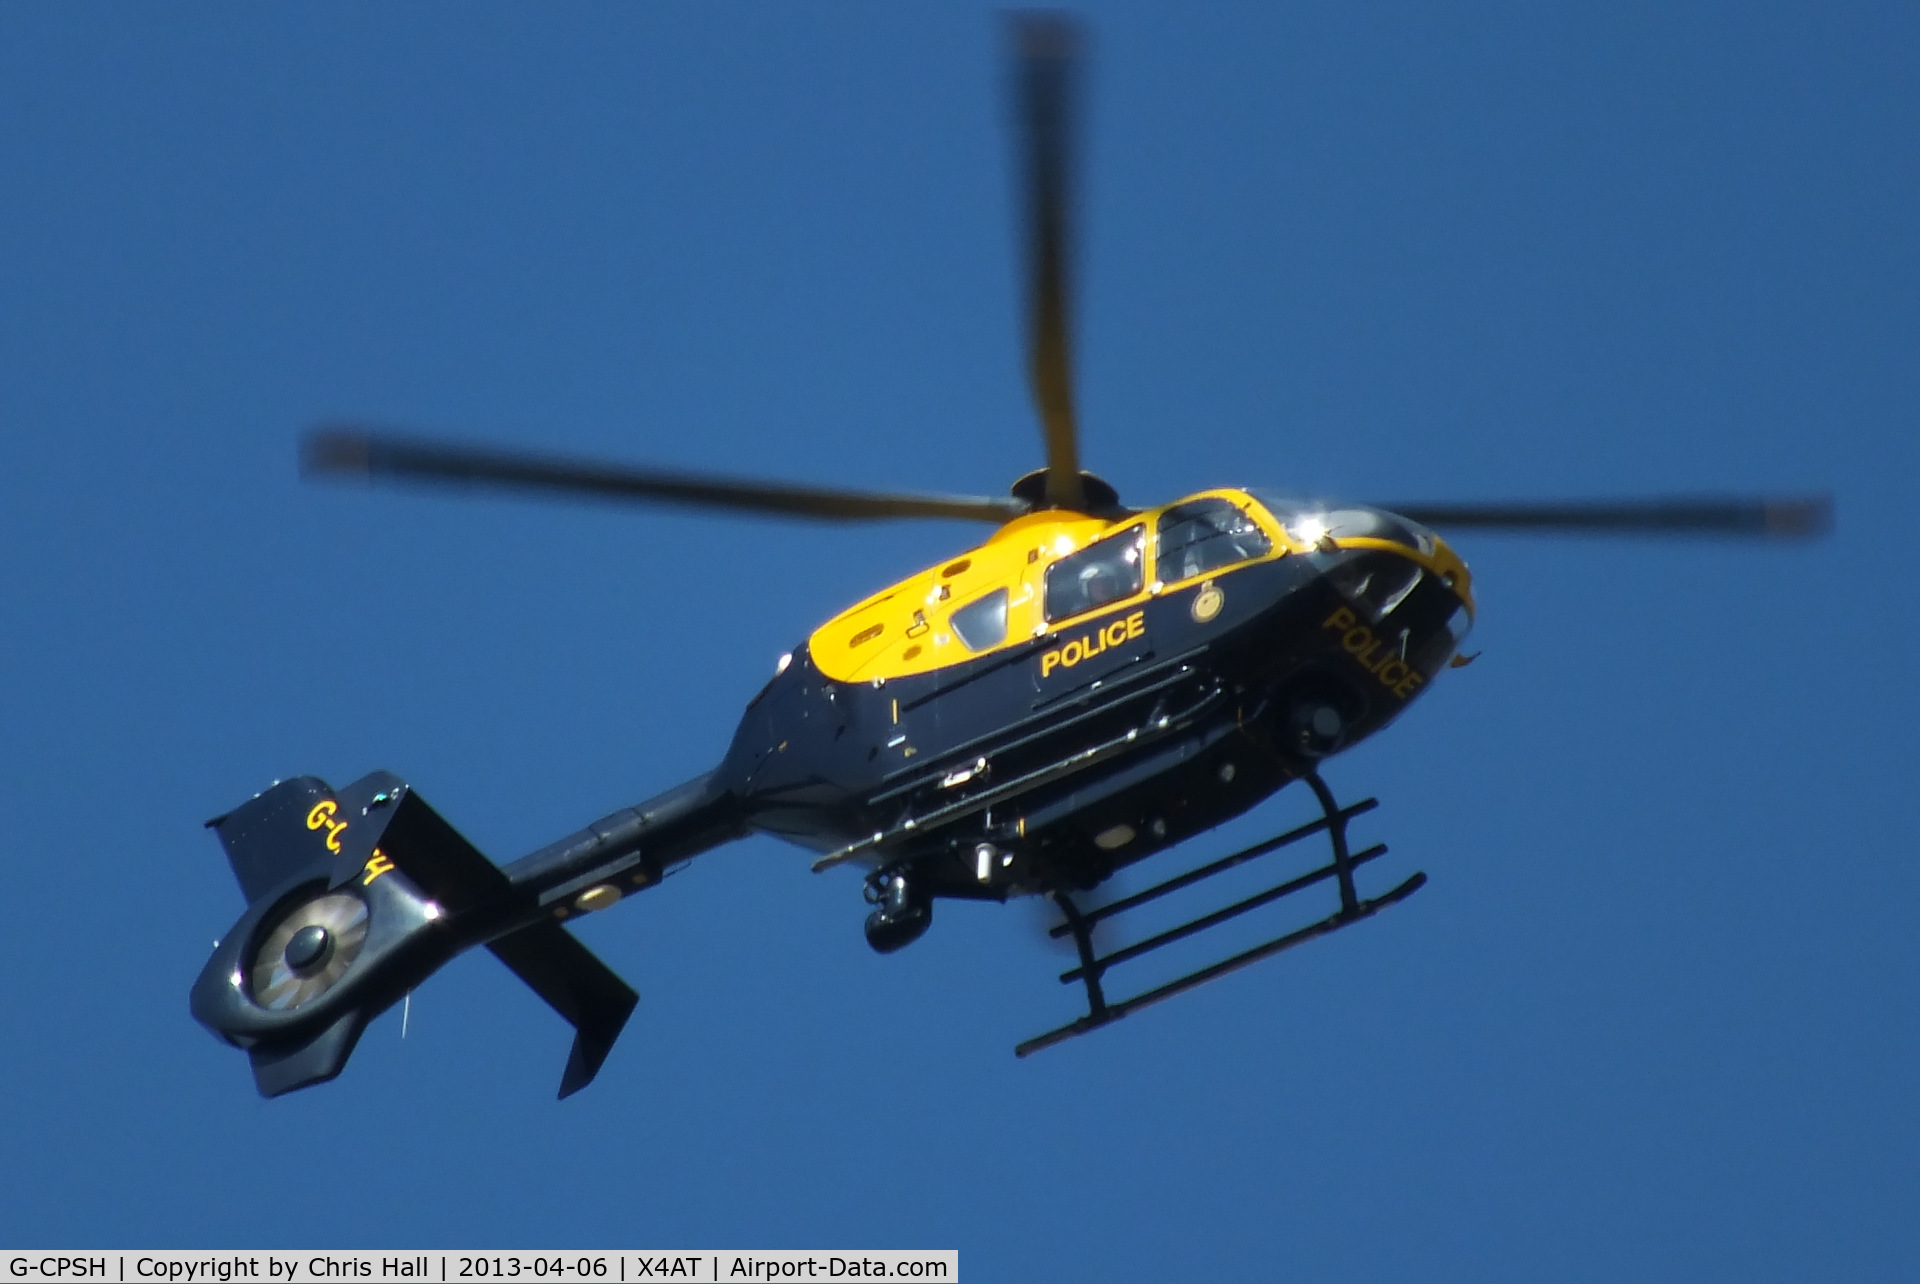 G-CPSH, 2001 Eurocopter EC-135T-2+ C/N 0209, Police helicopter at the 2013 Grand National, Aintree